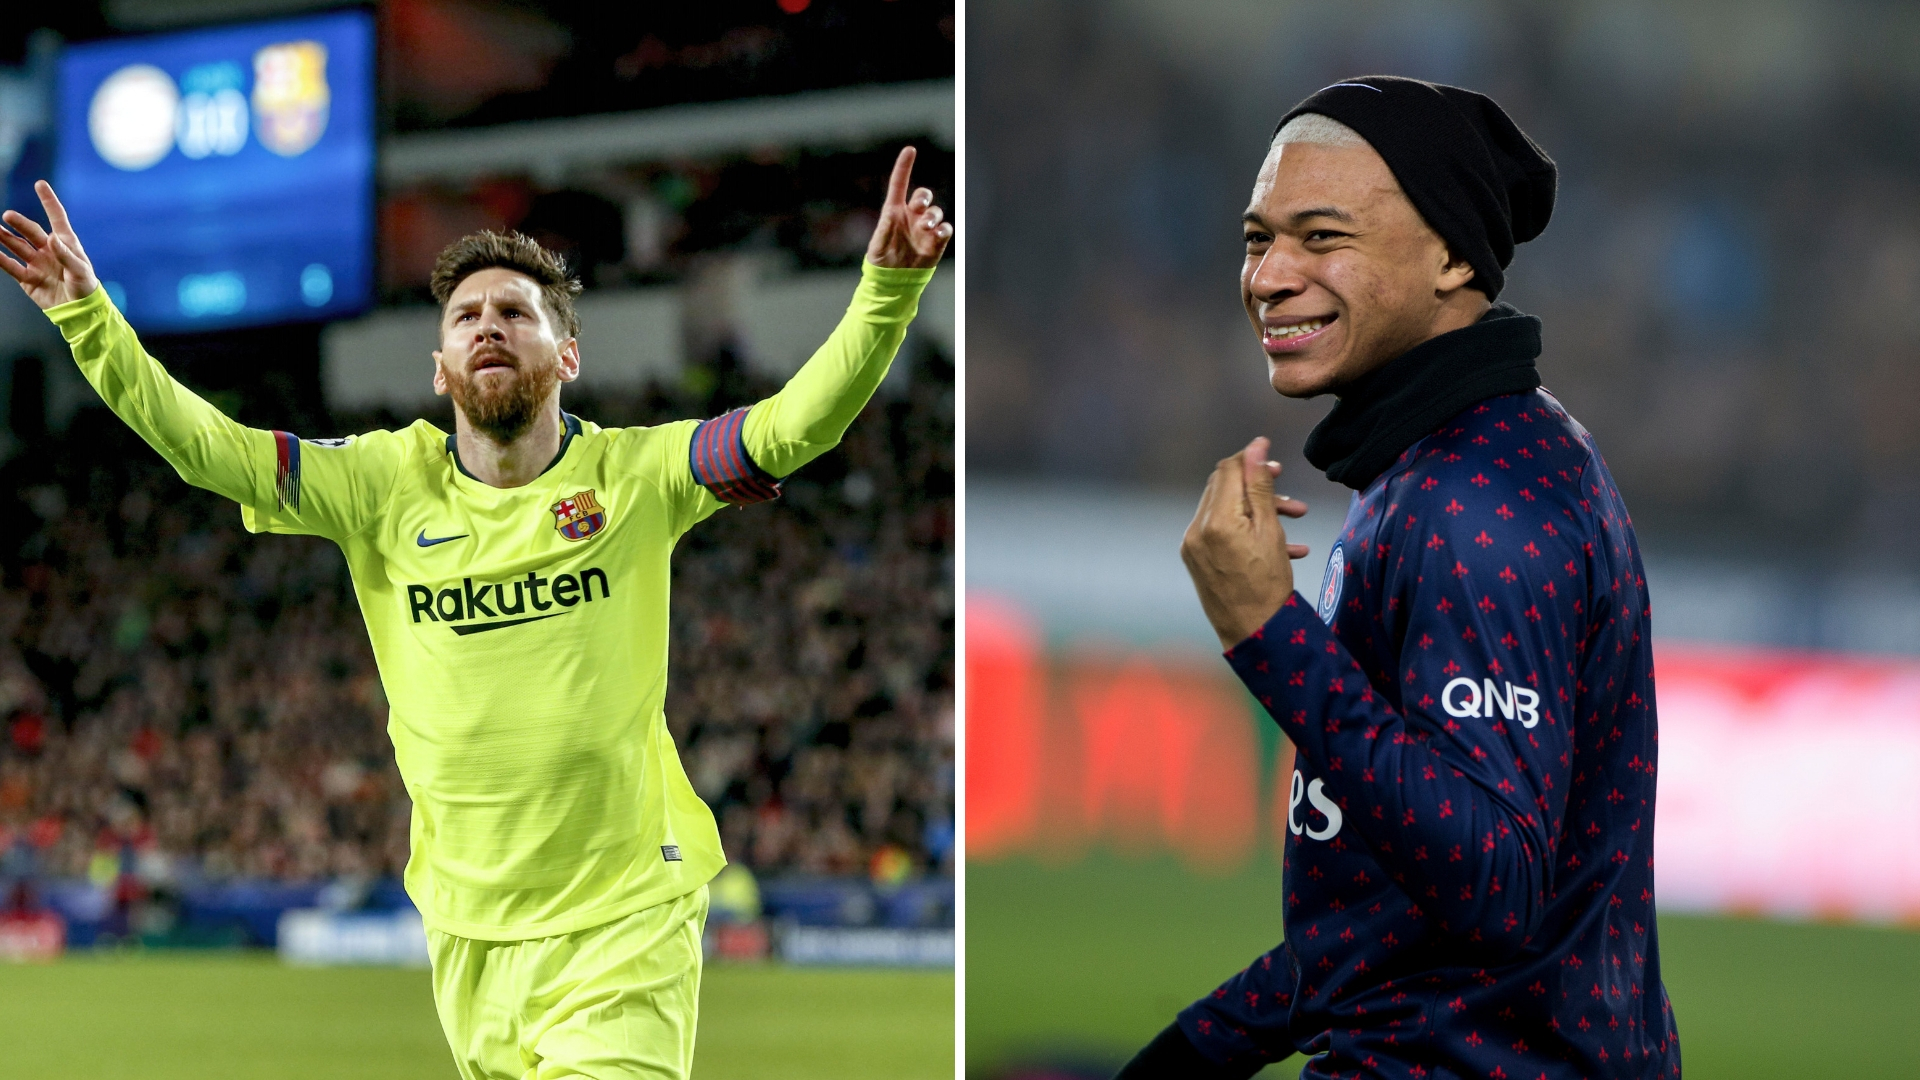 Mbappé's Humble Response To Quote Claiming That He Said He's Better Than Messi